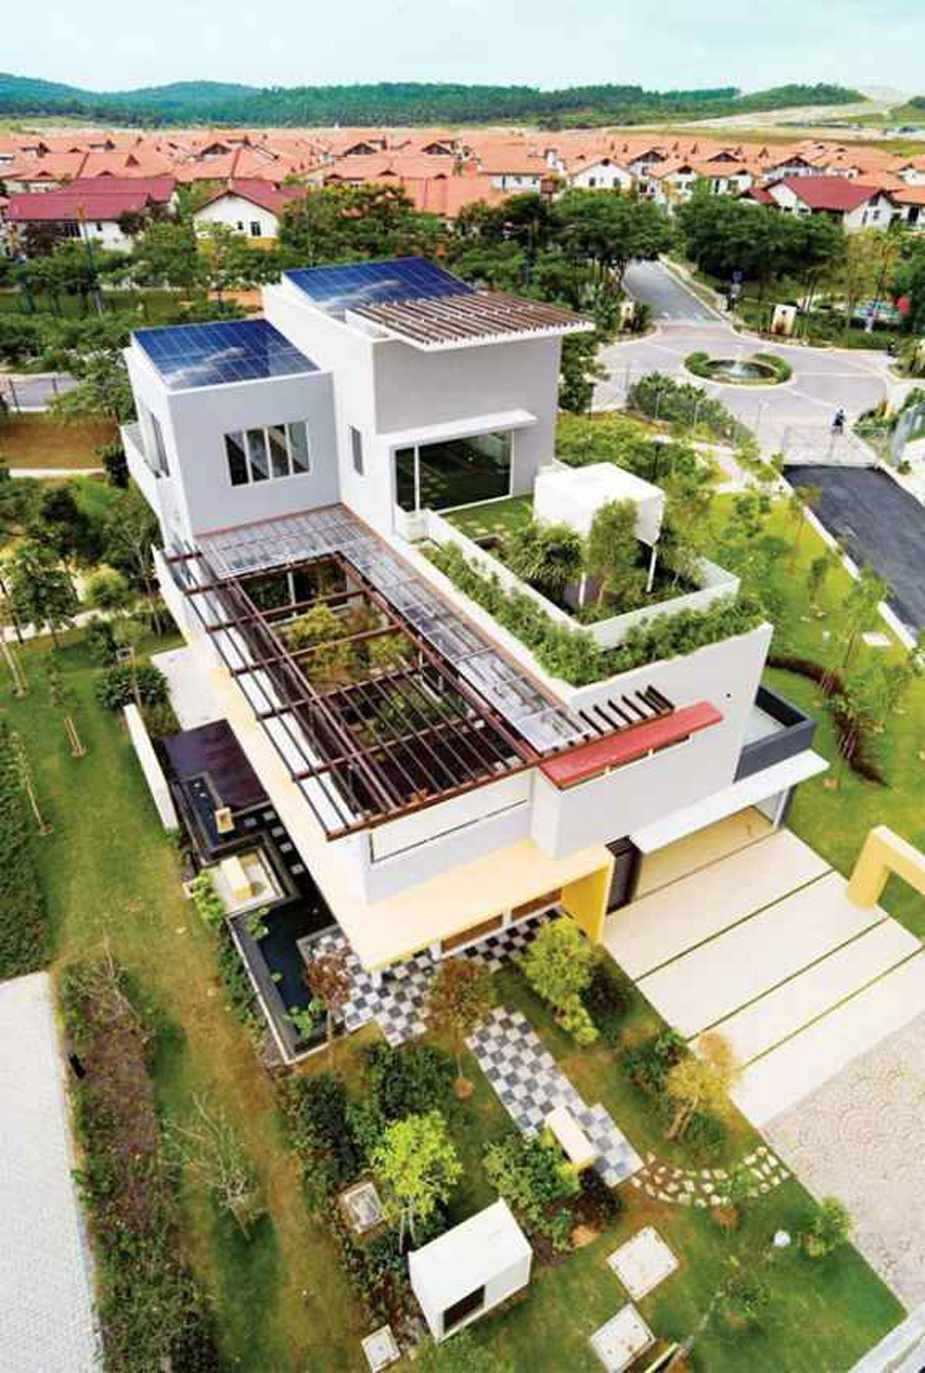 Tropical House Design By Tws Partners For Rooftop Garden Designs pertaining to House Design With Rooftop Garden